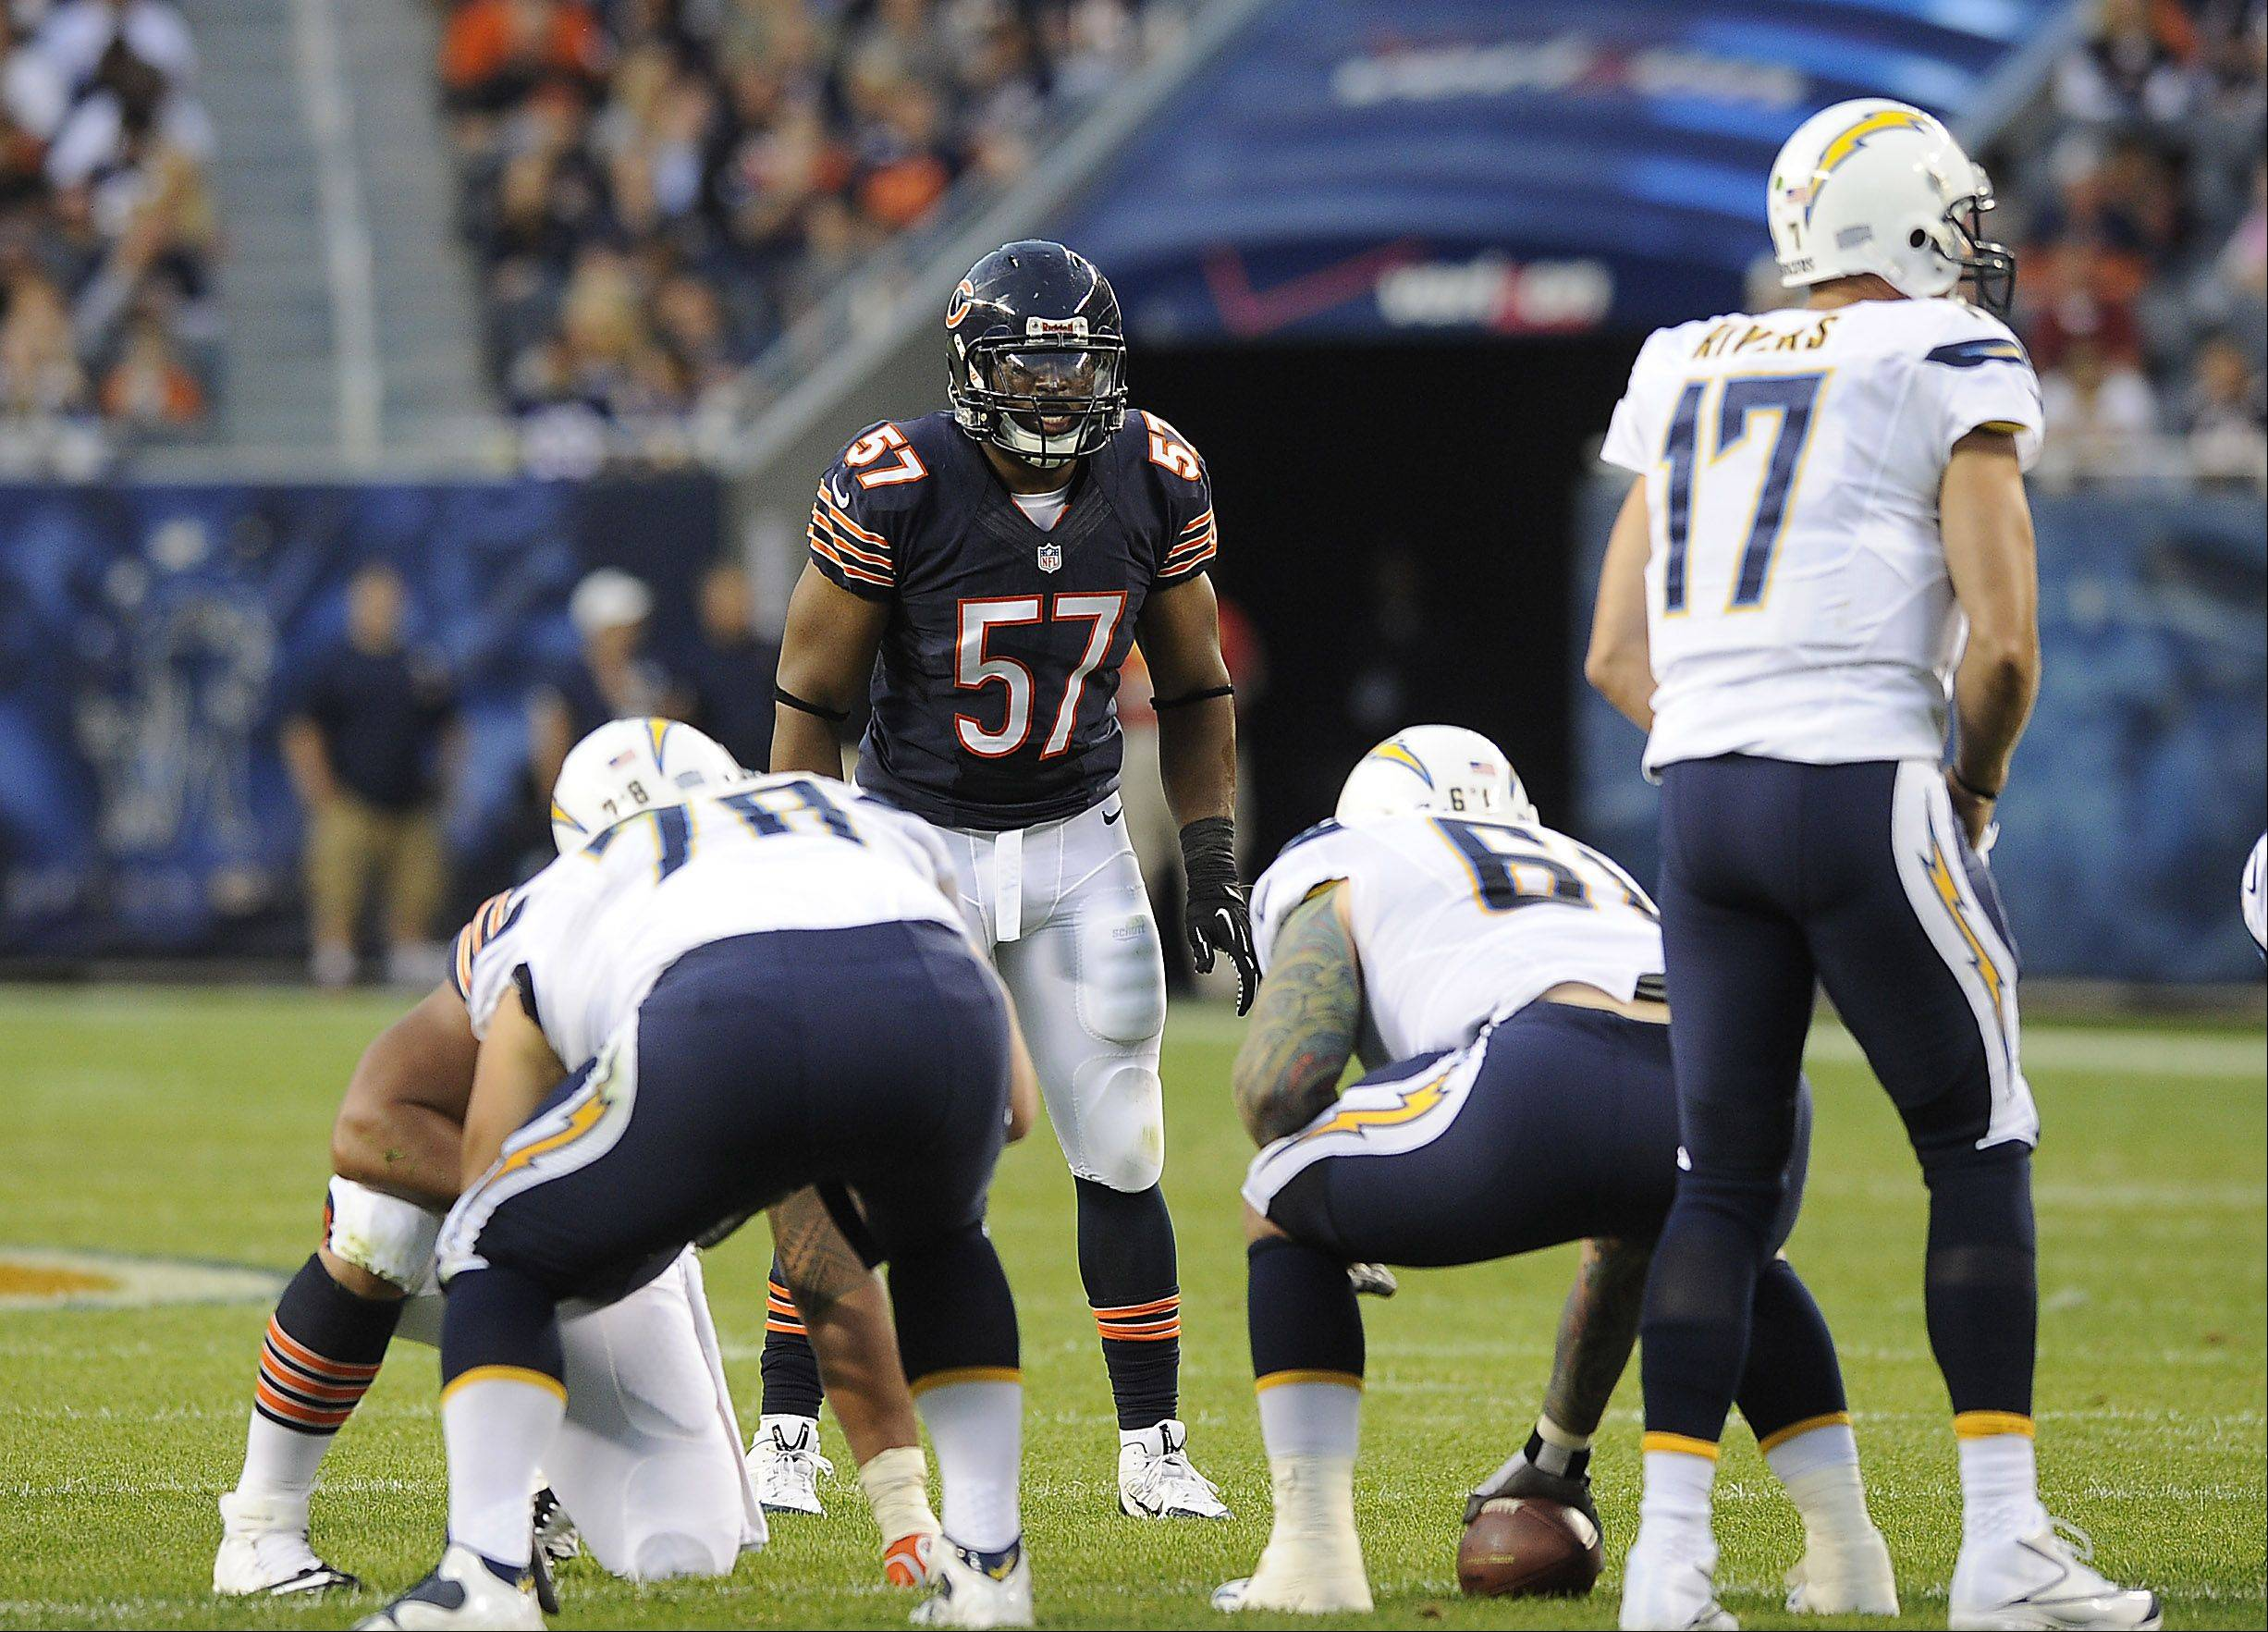 Bears Jonathan Bostic on defense against the Chargers in the first preseason home game in Chicago at Soldier Field.